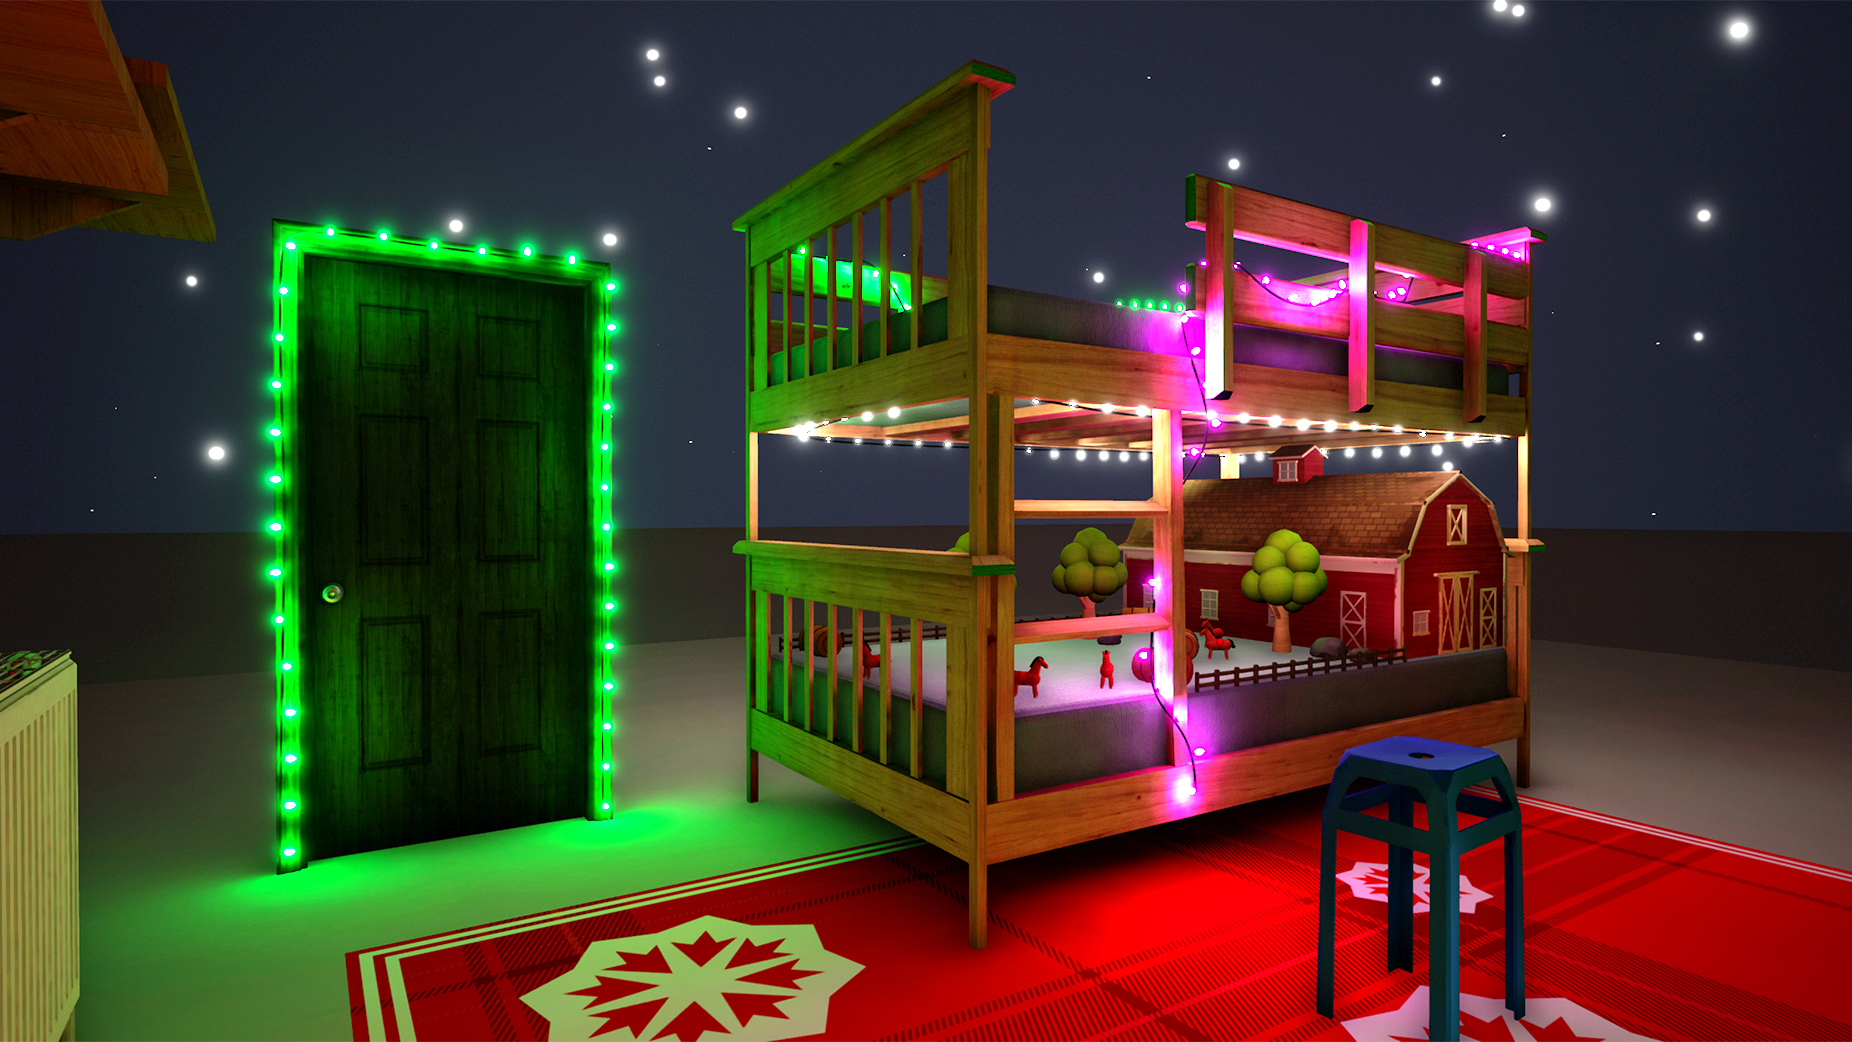 ChristmasBunkbeds screenshot